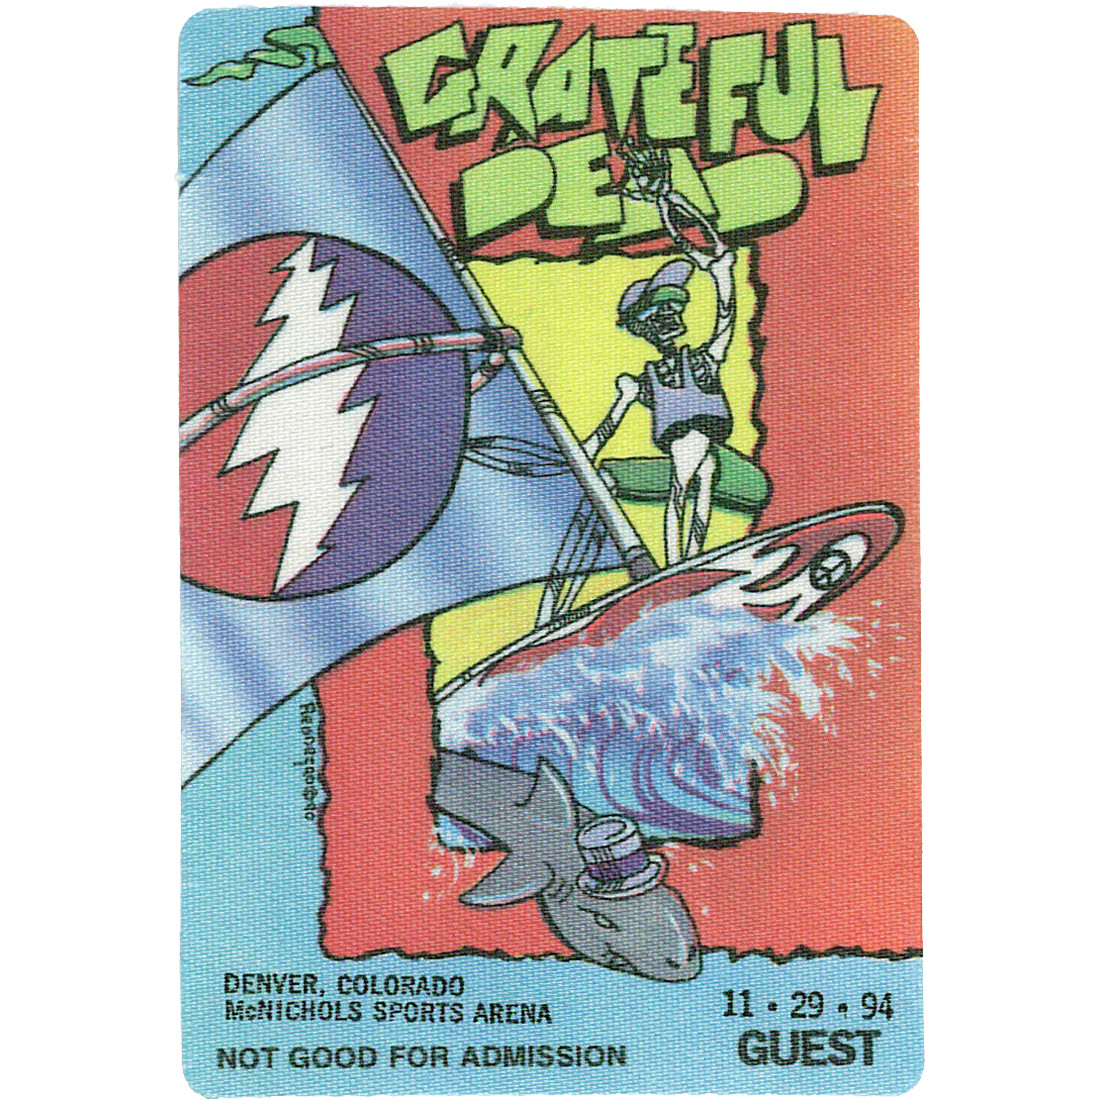 Grateful Dead 1994 11-29 Backstage Pass